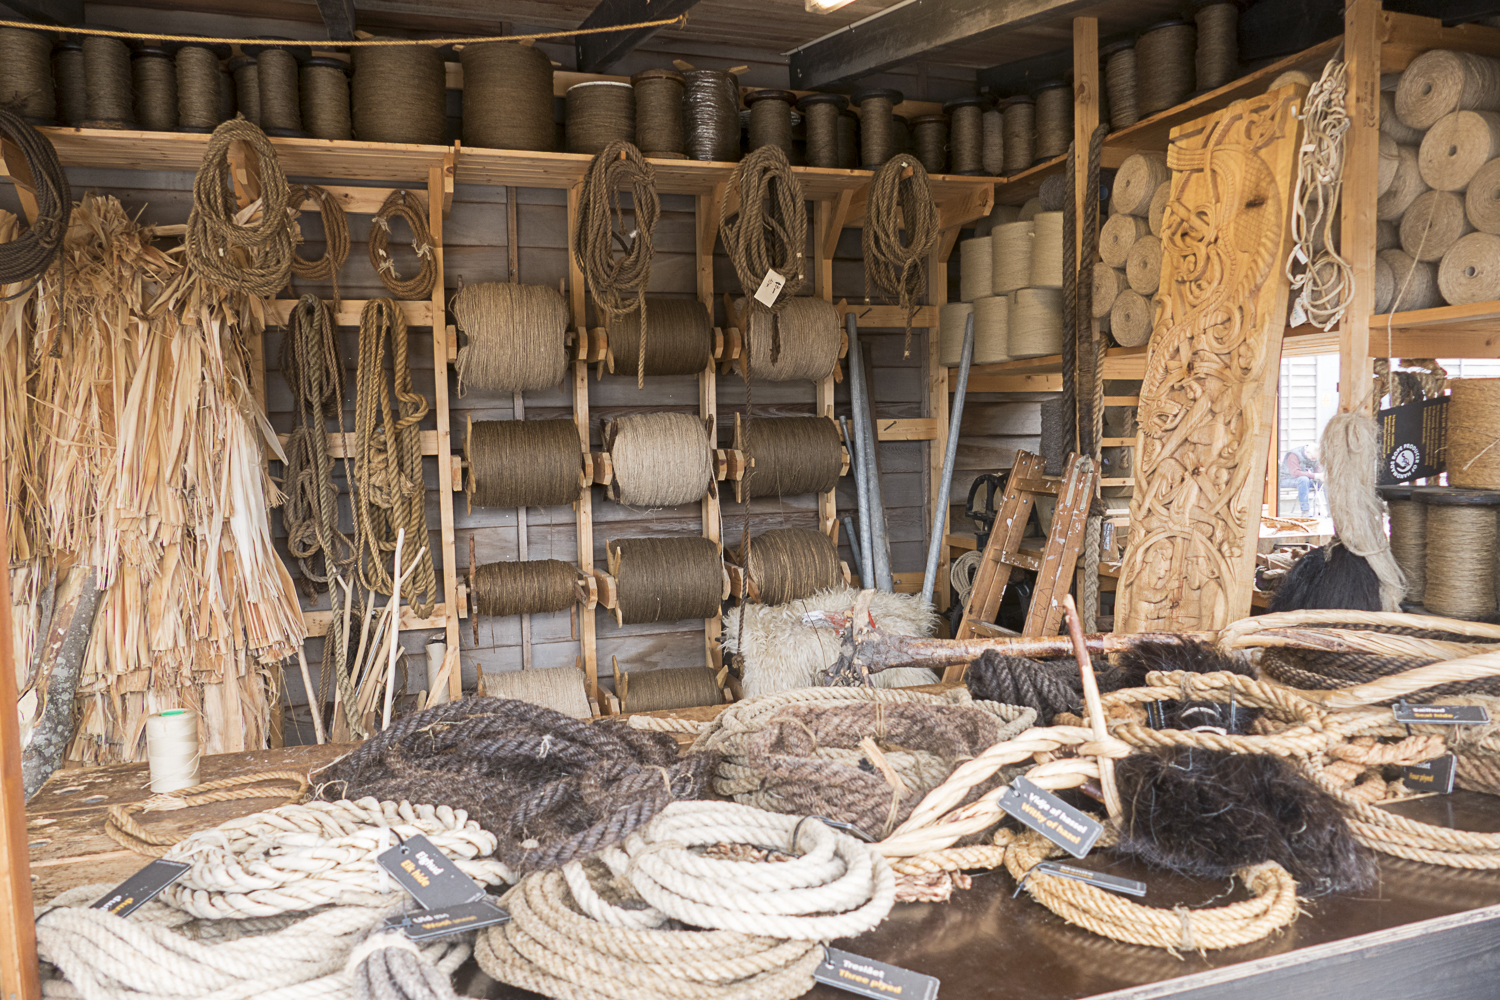 A display of nautical ropes